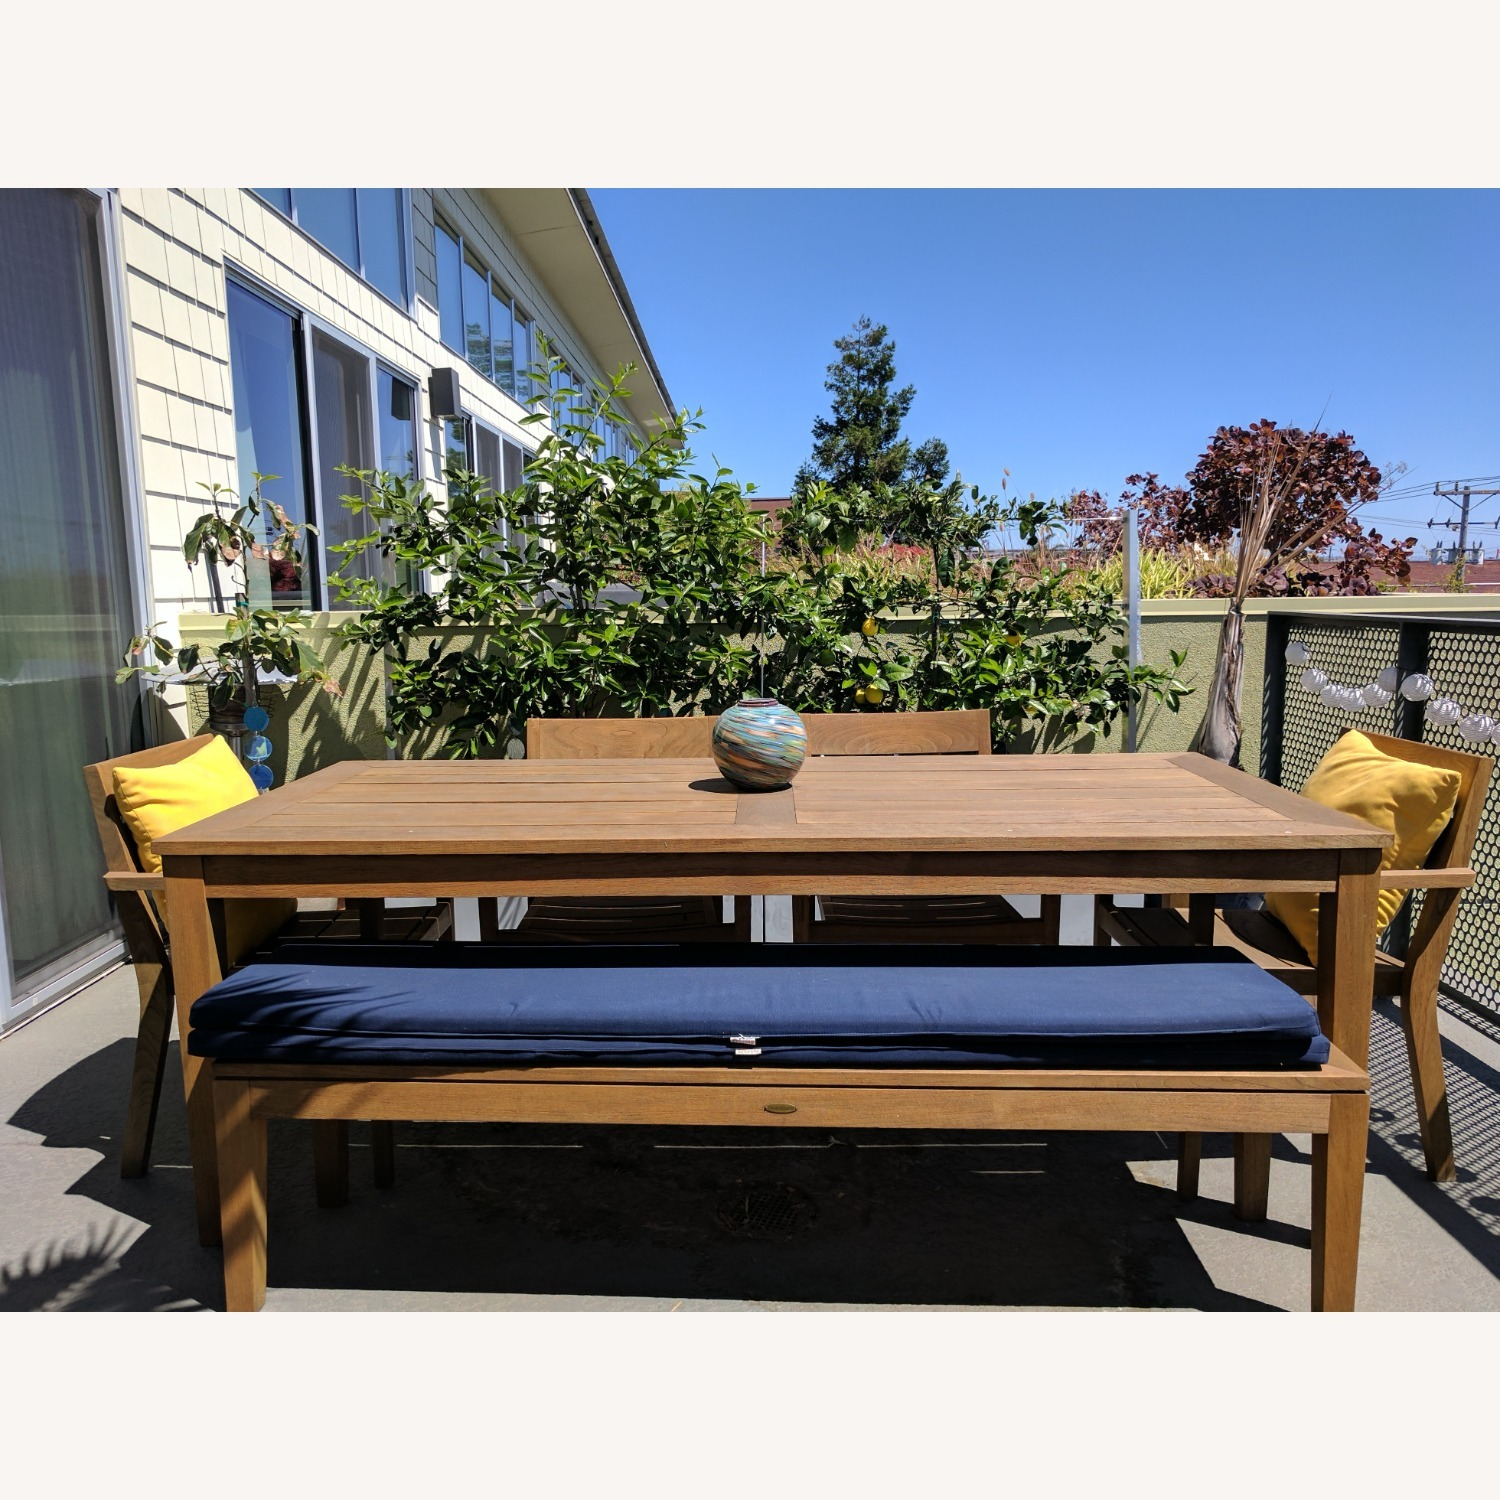 Crate & Barrel Regatta Dining Table Bench Cushions - image-2